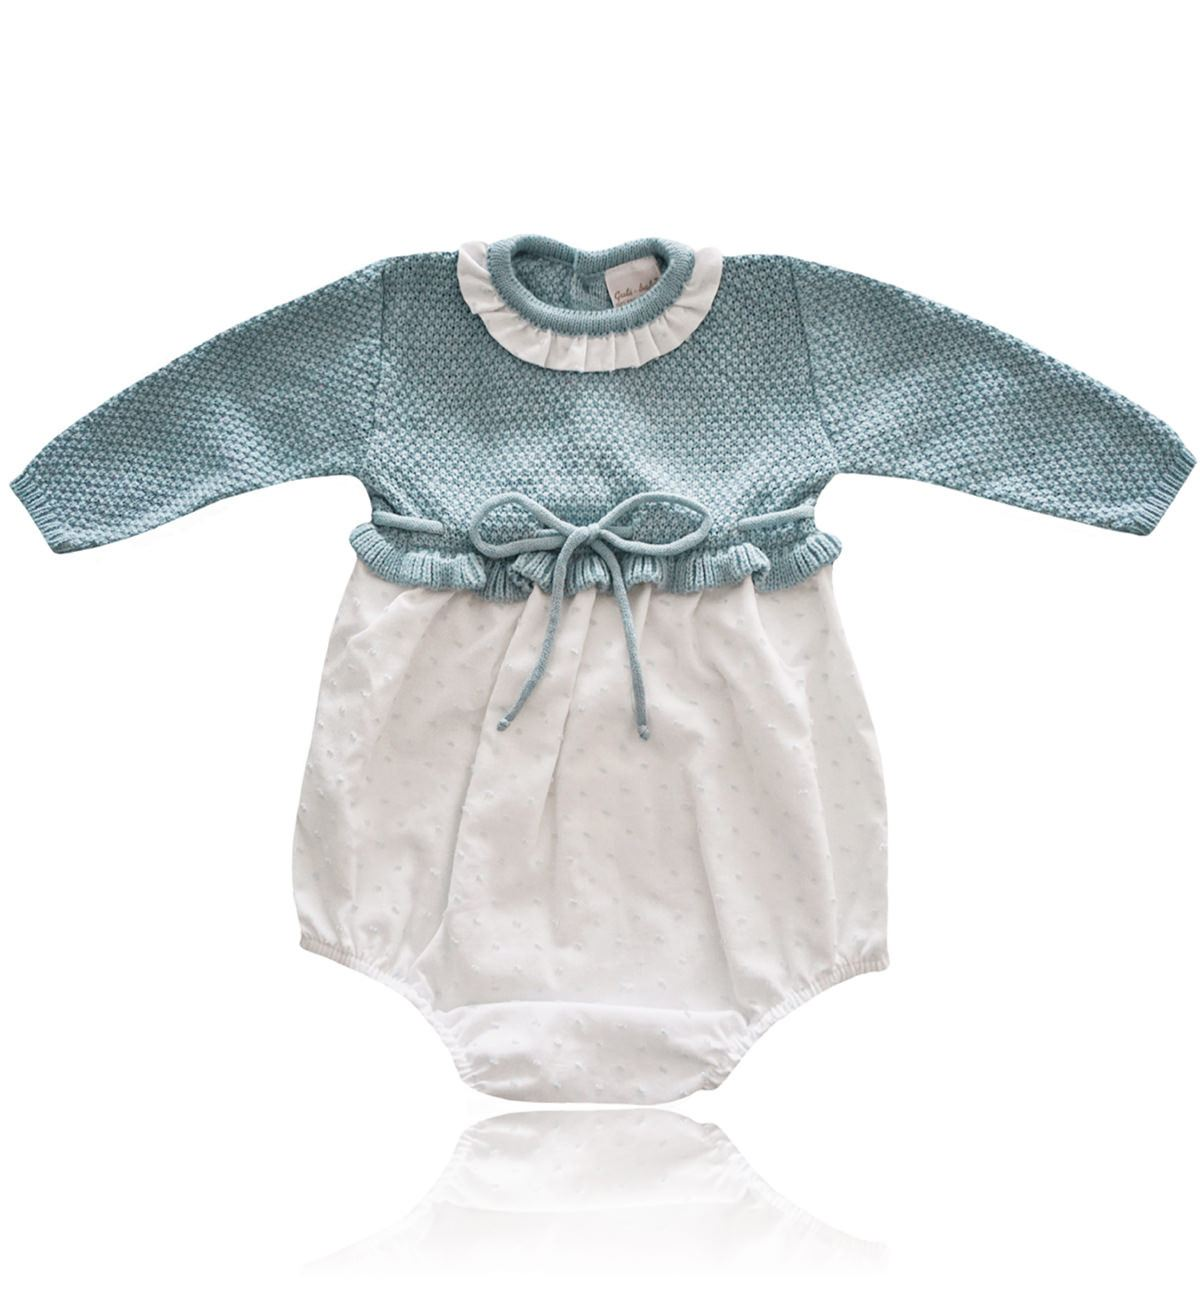 Spanish baby clothes | baby Rompers | Dusty green & white romper suit |babymaC  - 1